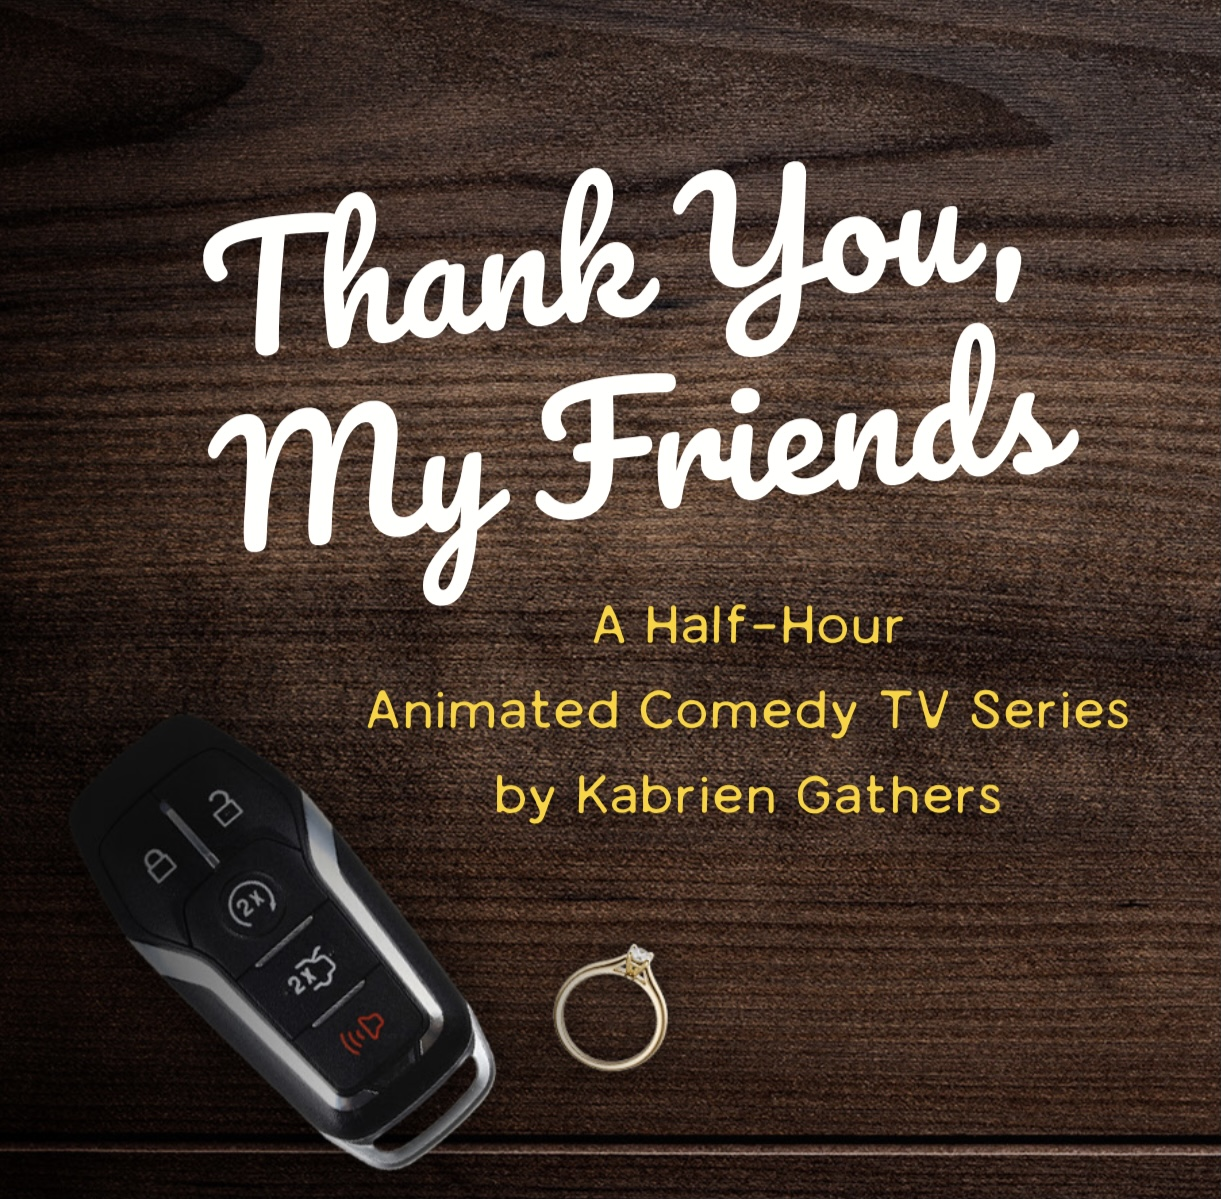 THANK YOU, MY FRIENDS - THE GOLDEN GIRL